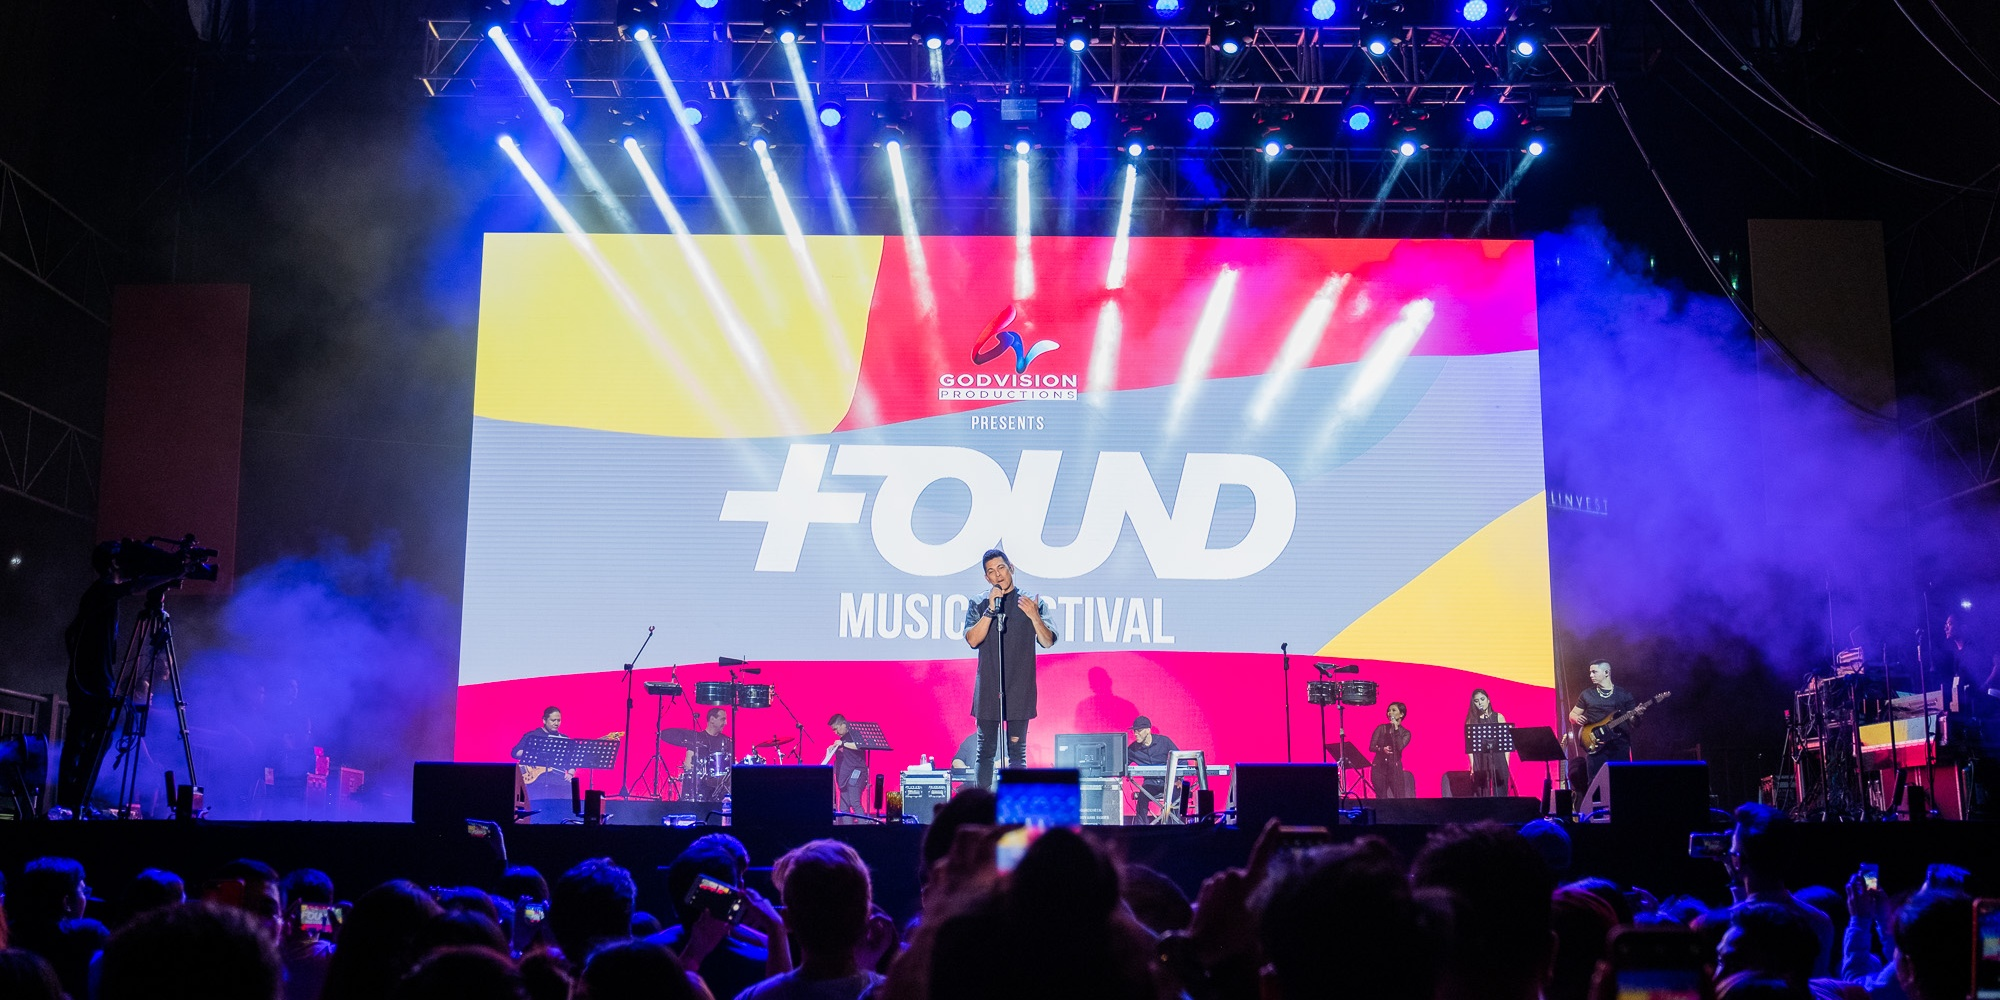 Gary Valenciano, Citipointe Worship, IV of Spades, and more sing their praises at Found Music Festival 2020 – photo gallery